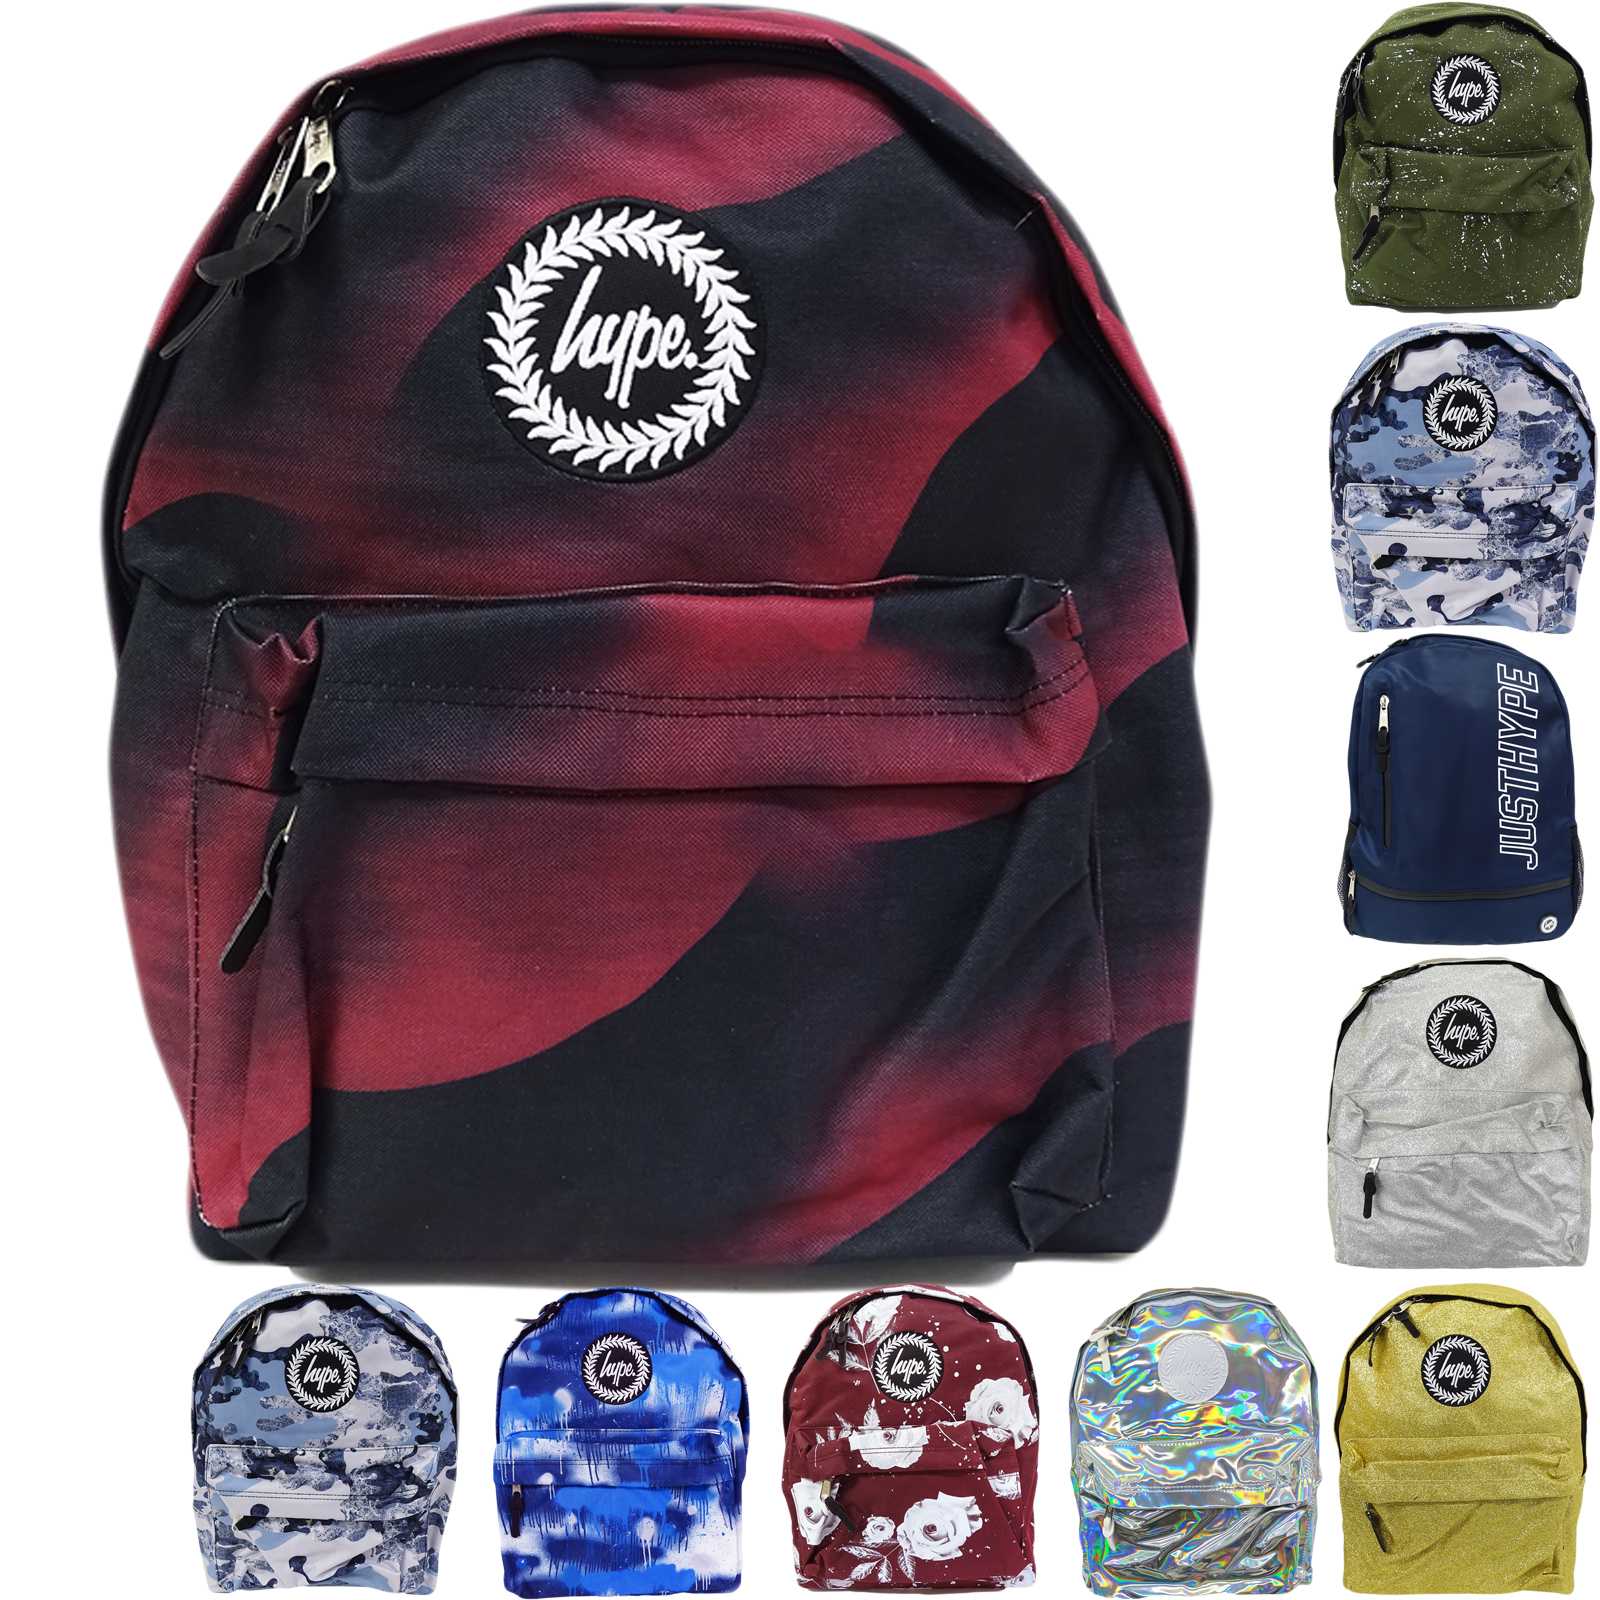 Sentinel Boys Hype Backpack Bags - HYPE BAG 4690bb42681a7